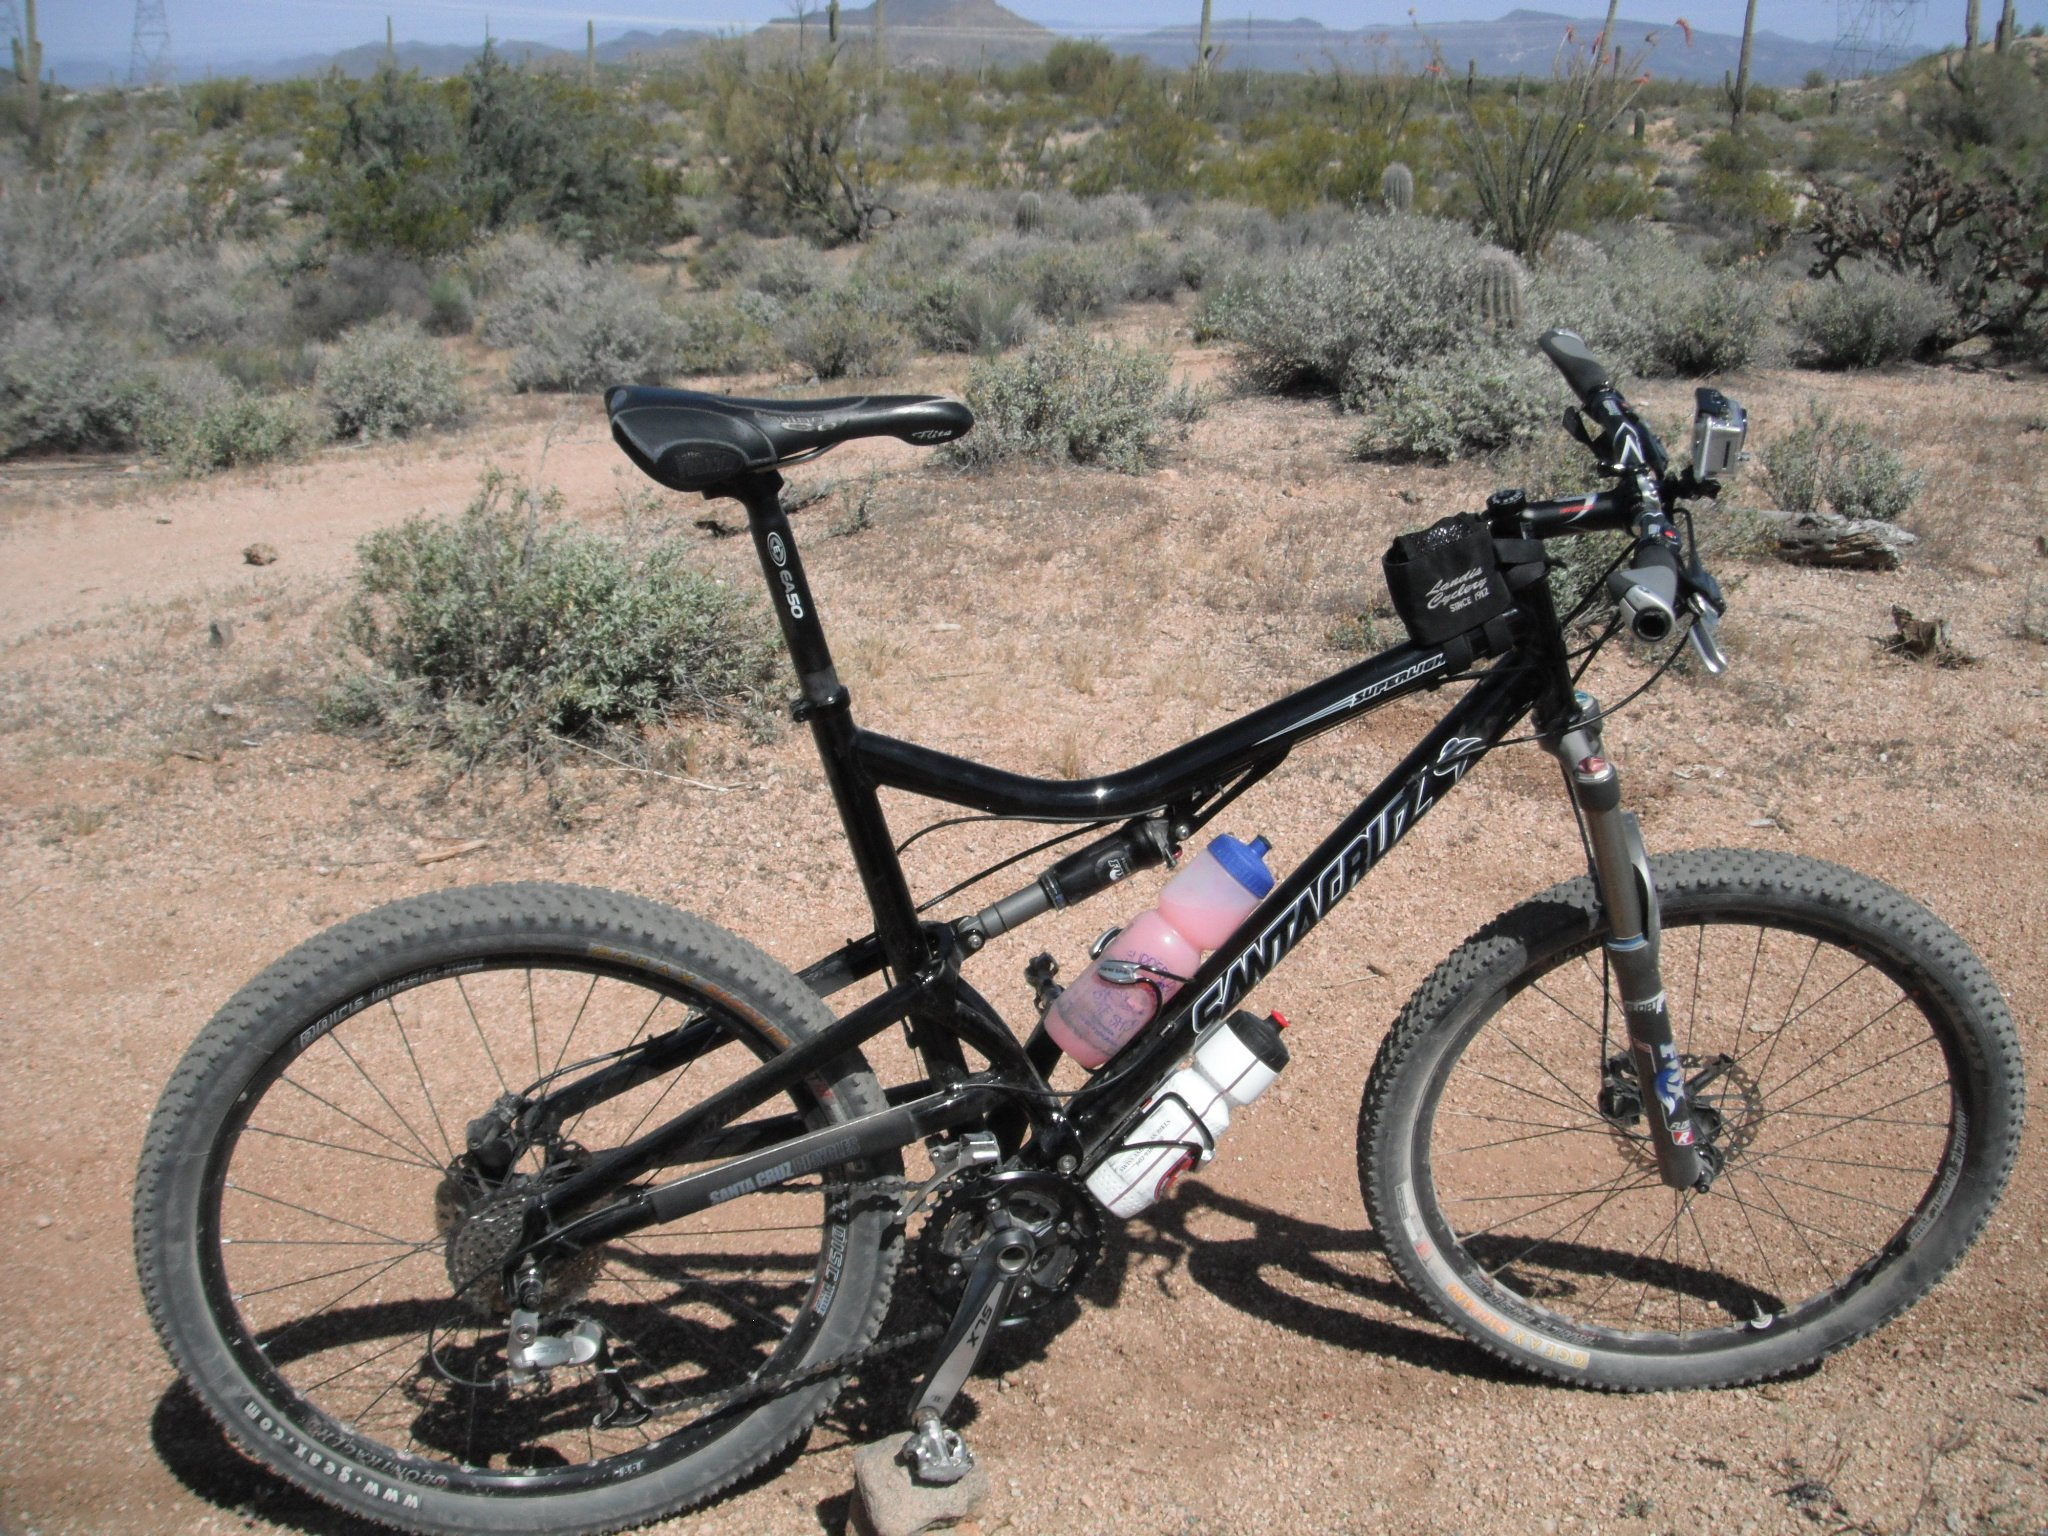 Yes, This is Another Blog Post About Out-of-Control Bike Prices